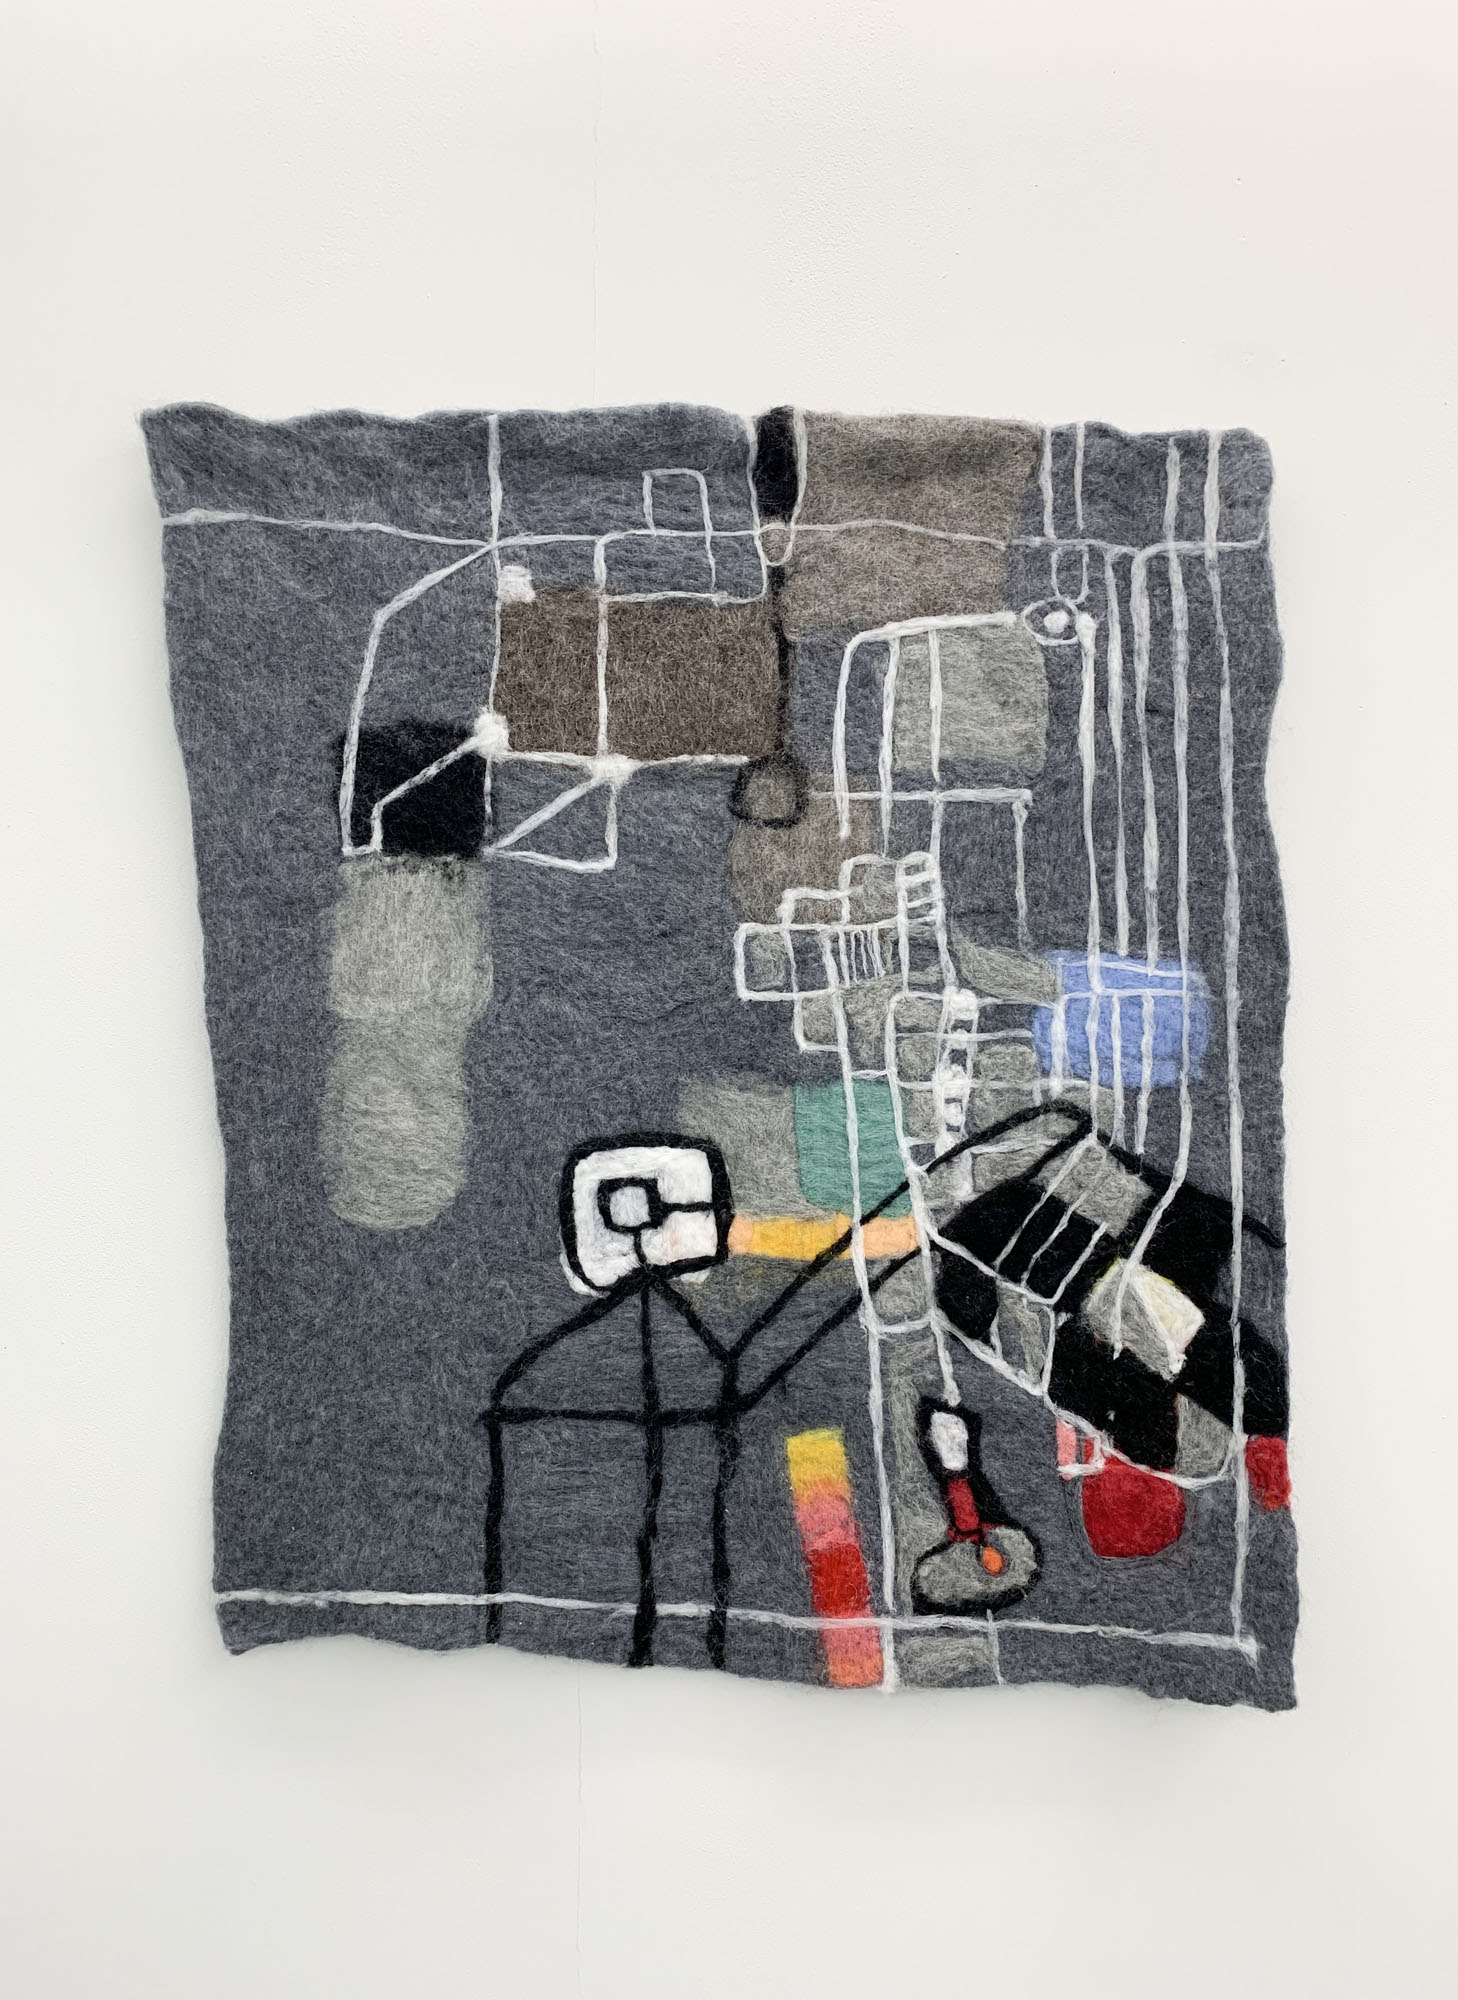 Sos 2019 wool, stainless steel fibre, electronics, sound 92 x 80 cm